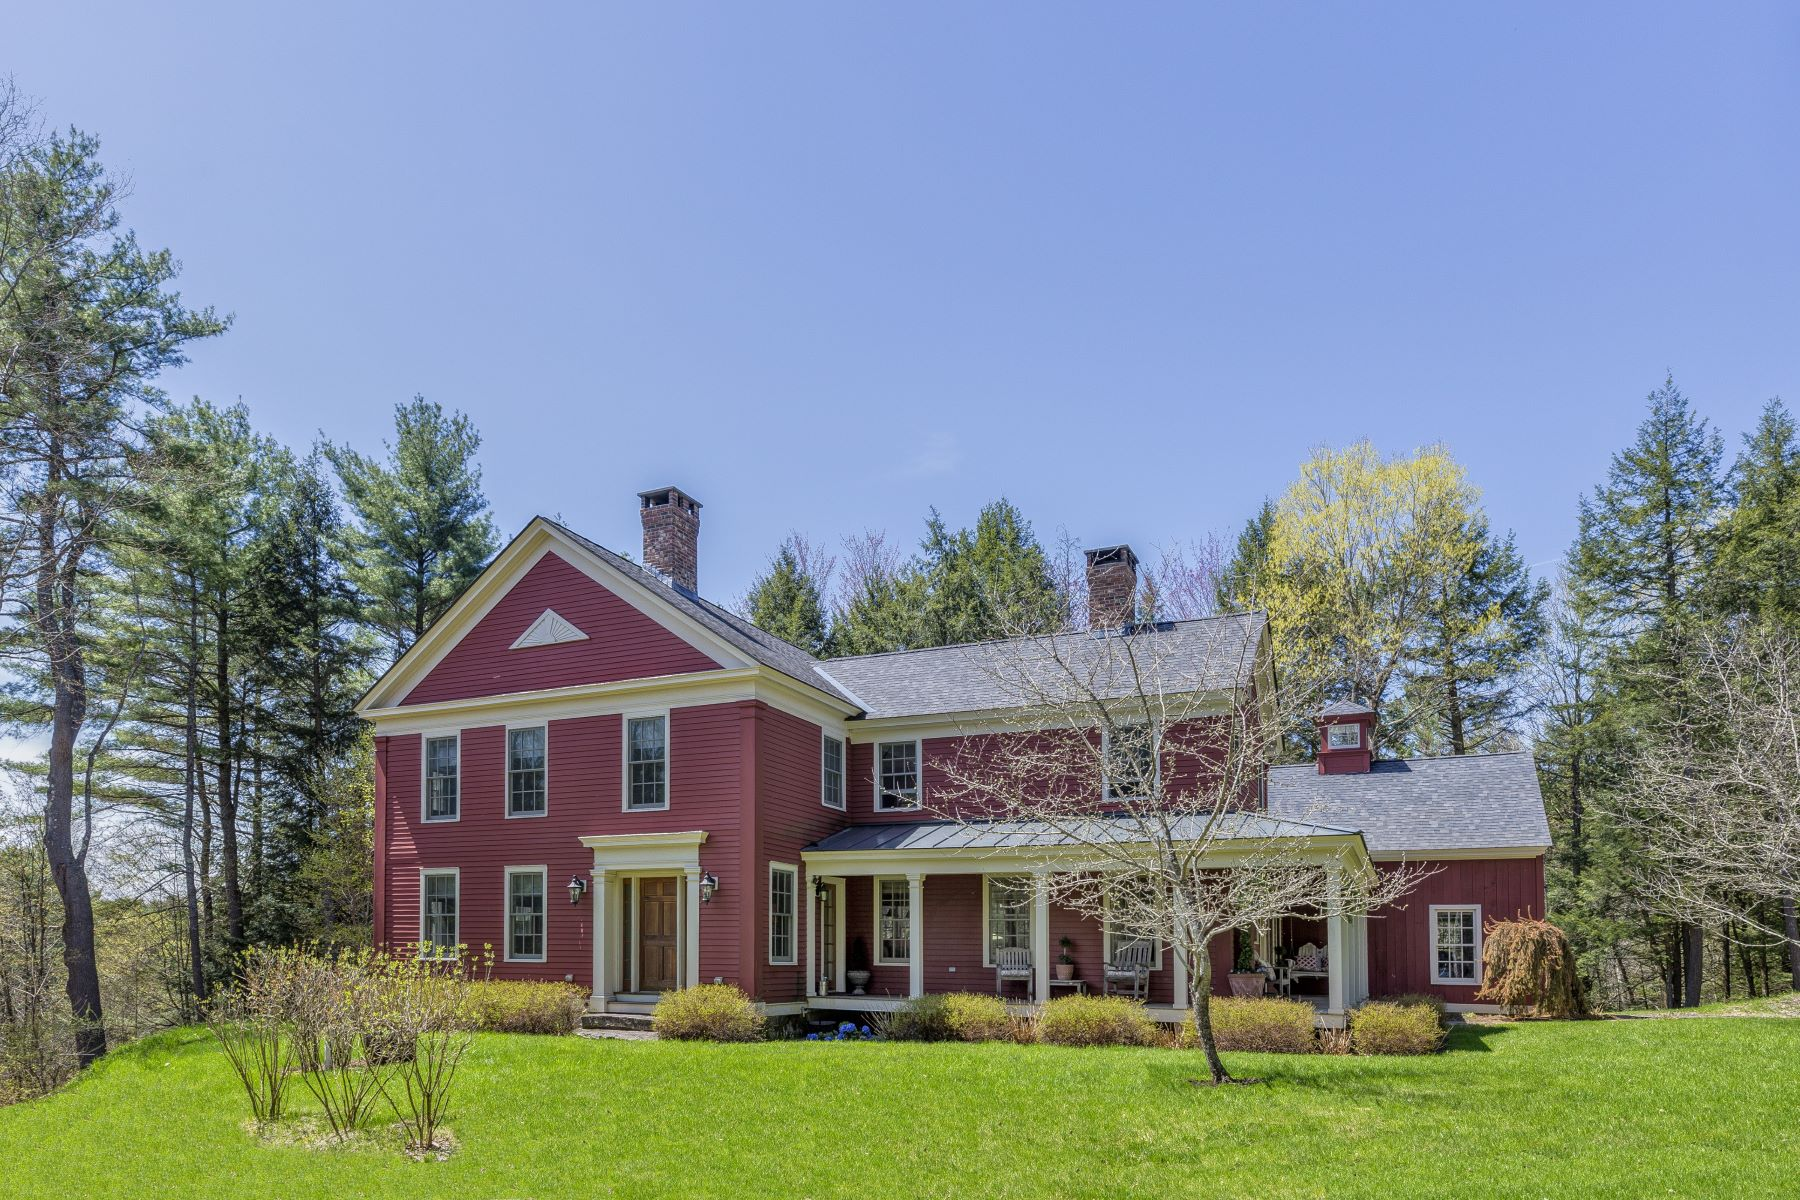 Single Family Home for Sale at 66 Hartness Way, Hartford 66 Hartness Way Hartford, Vermont 05001 United States